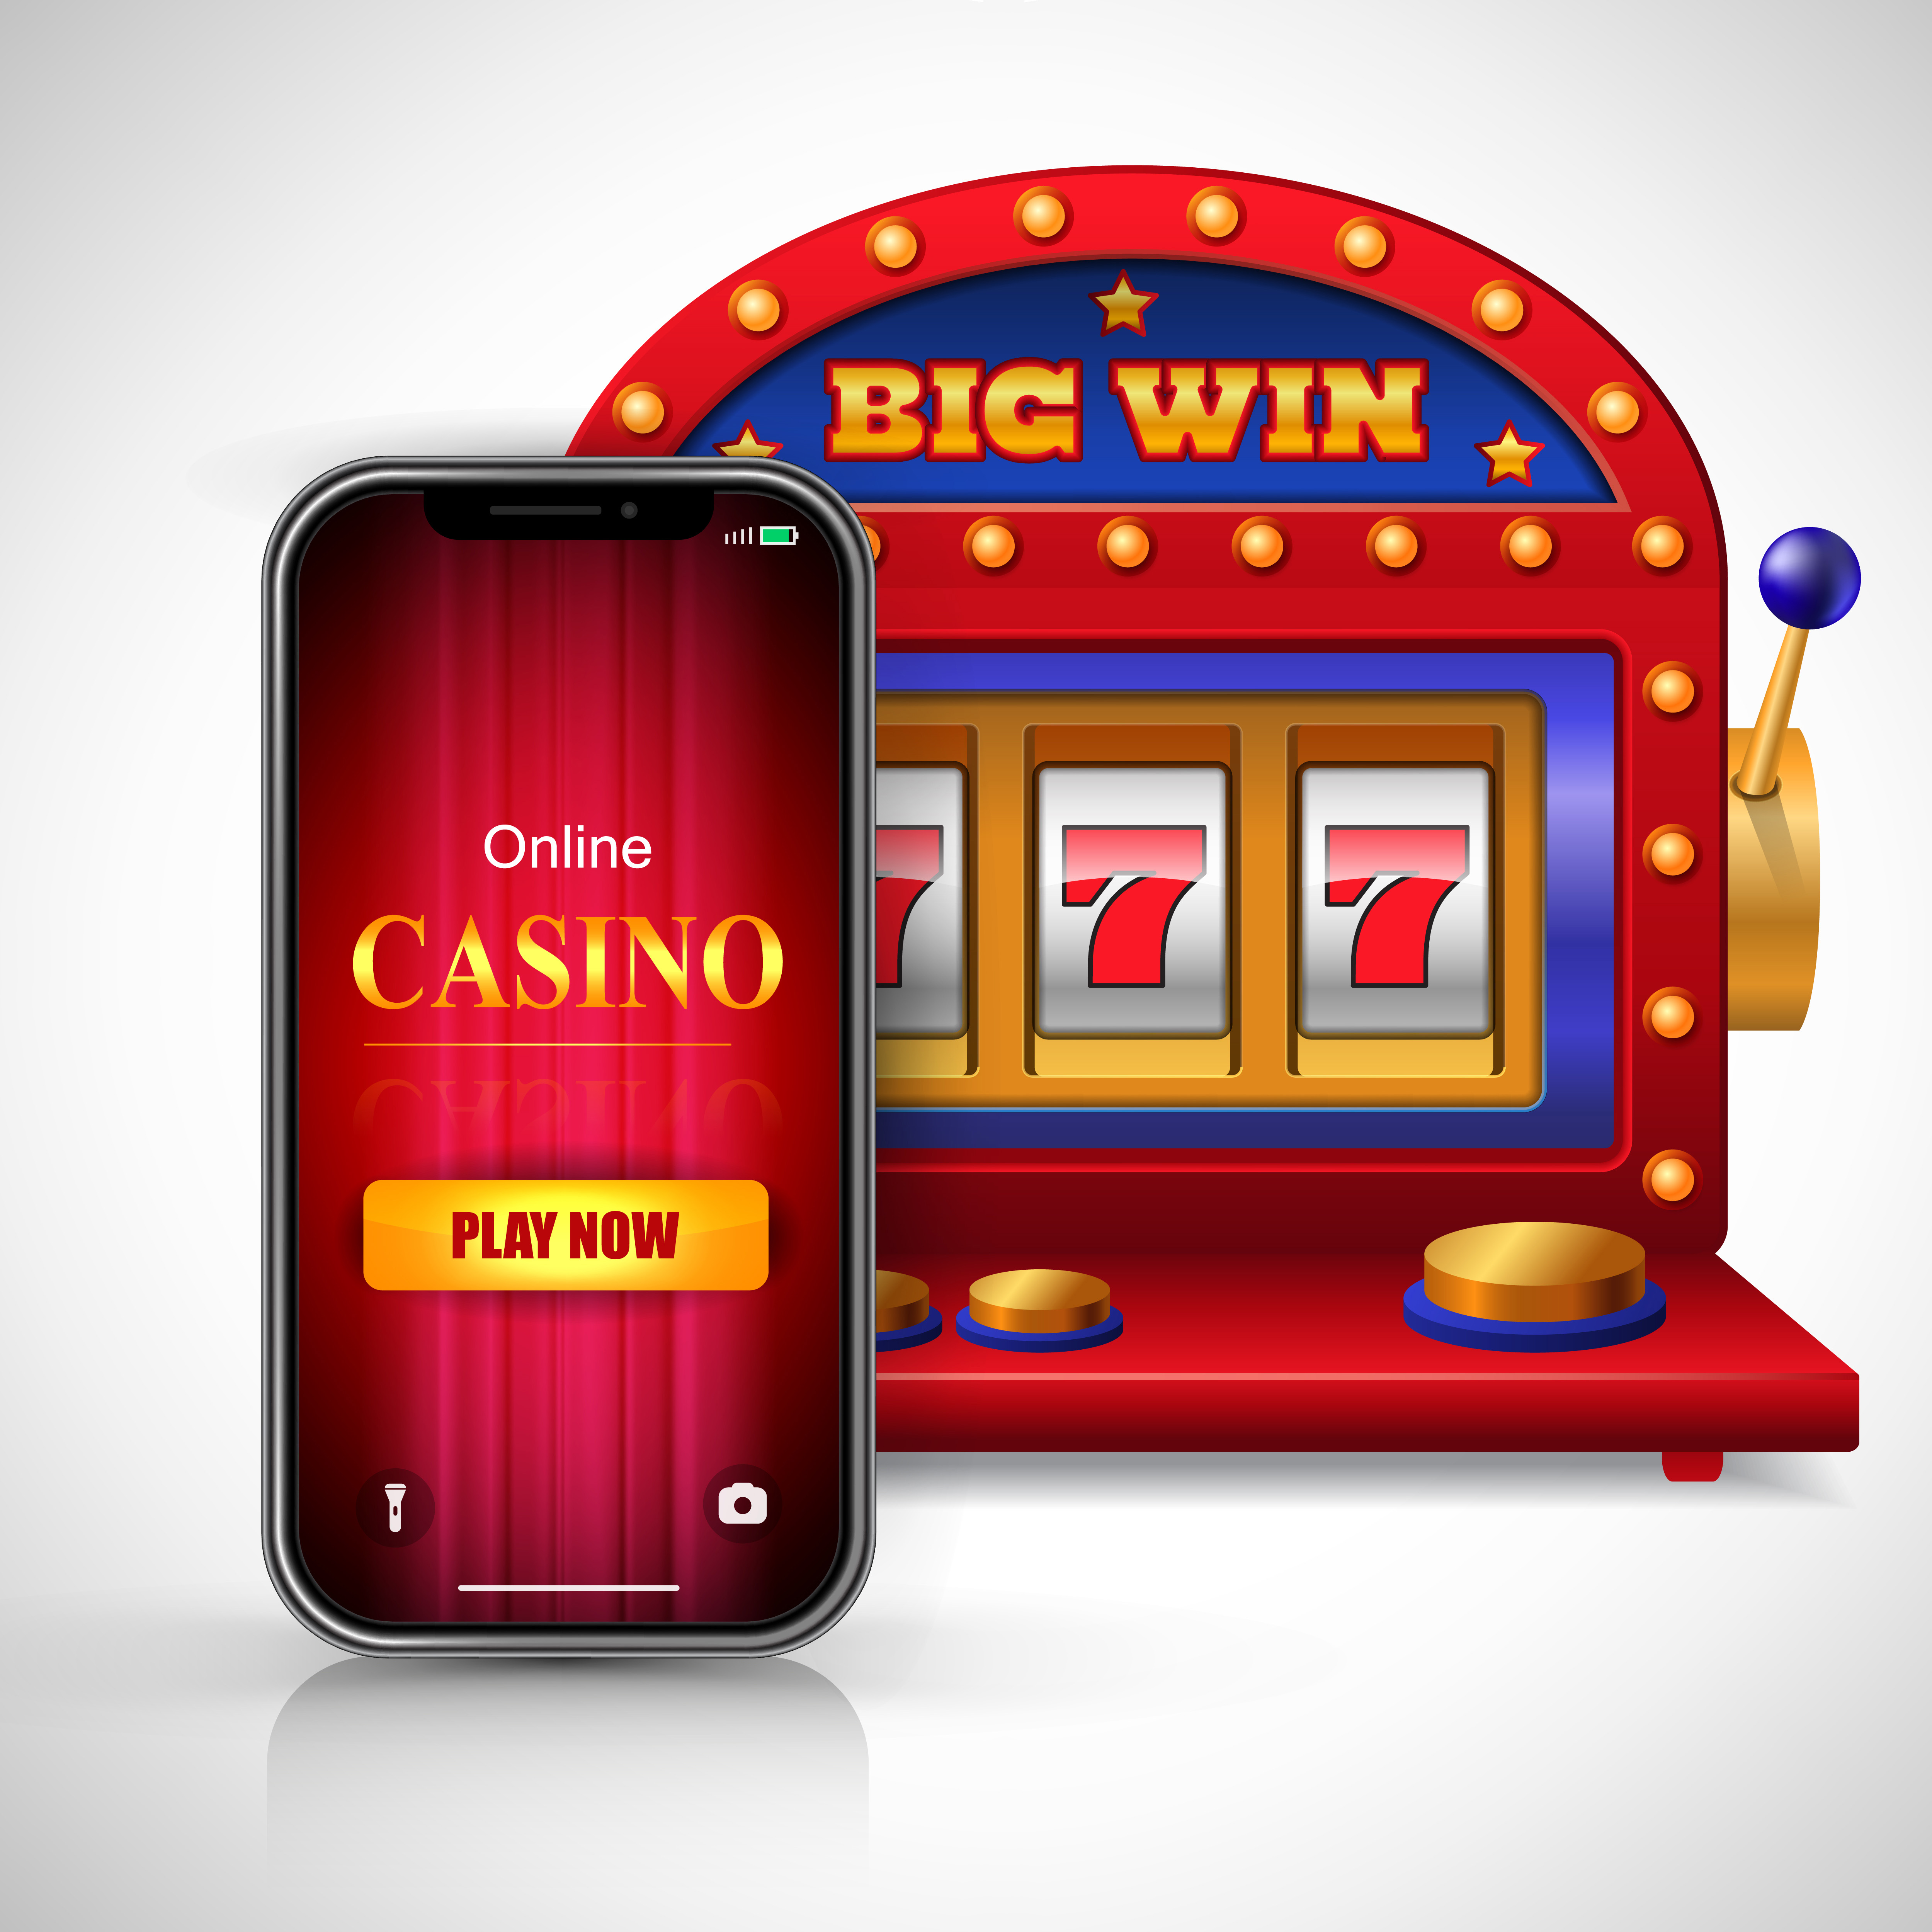 Big win online casino play now lettering on smartphone screen and slot machine. Casino business advertising design. For posters, banners, leaflets and brochures.